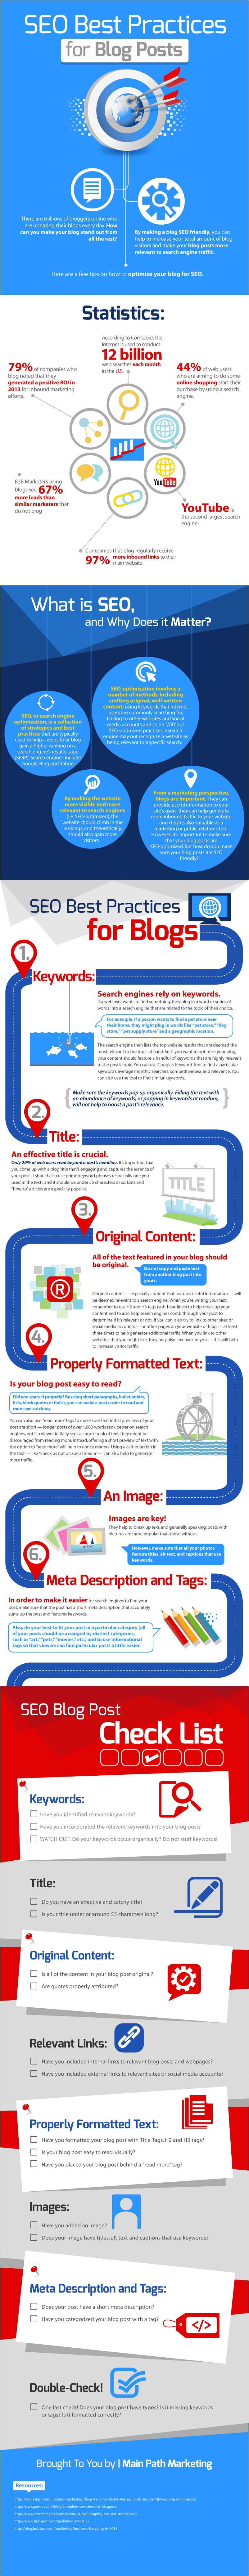 SEO Best Practices for Blog Posts #infographic